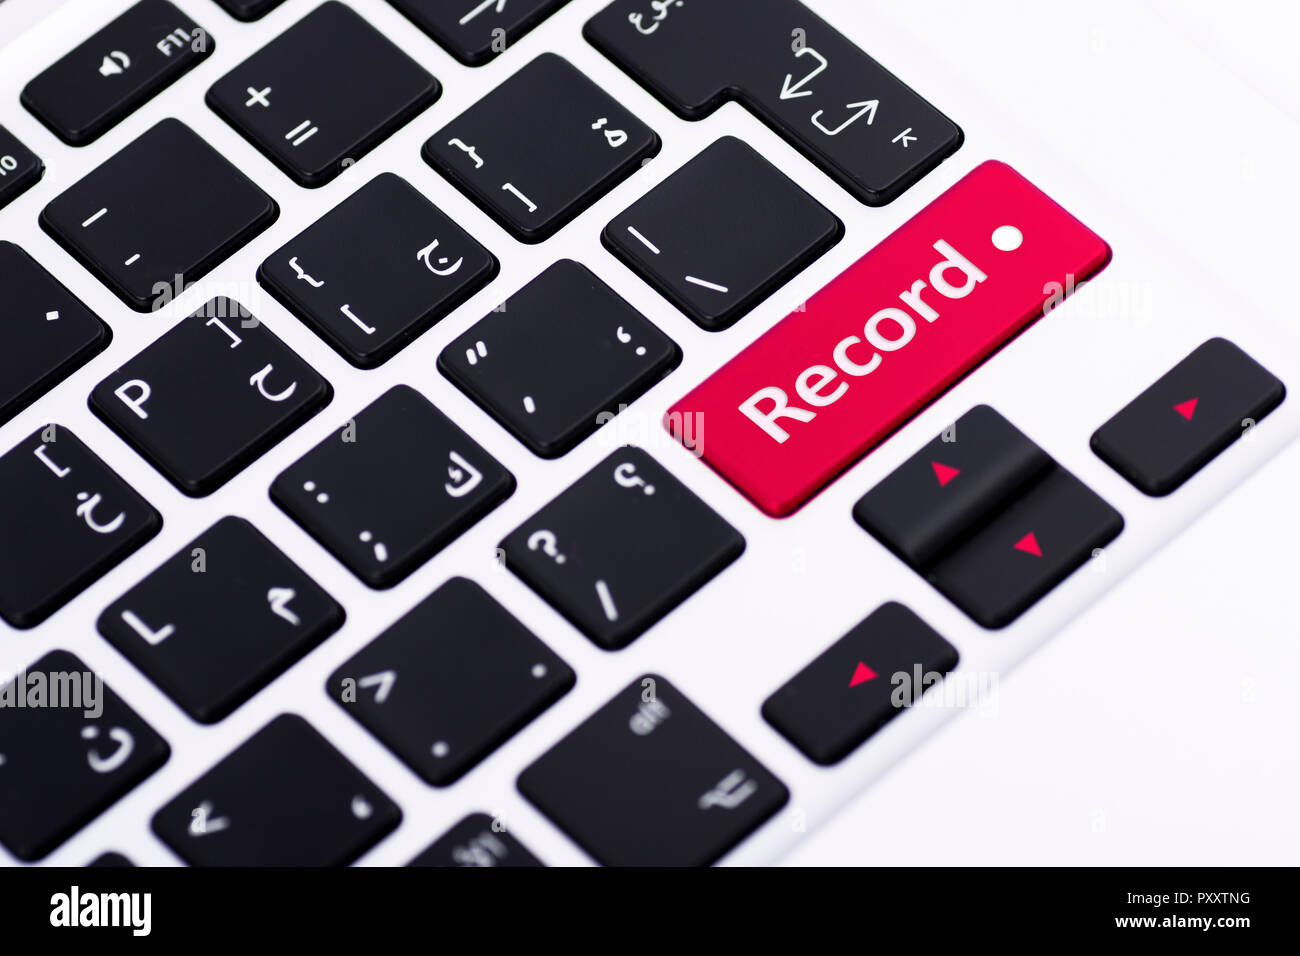 Record on keyboard button Stock Photo